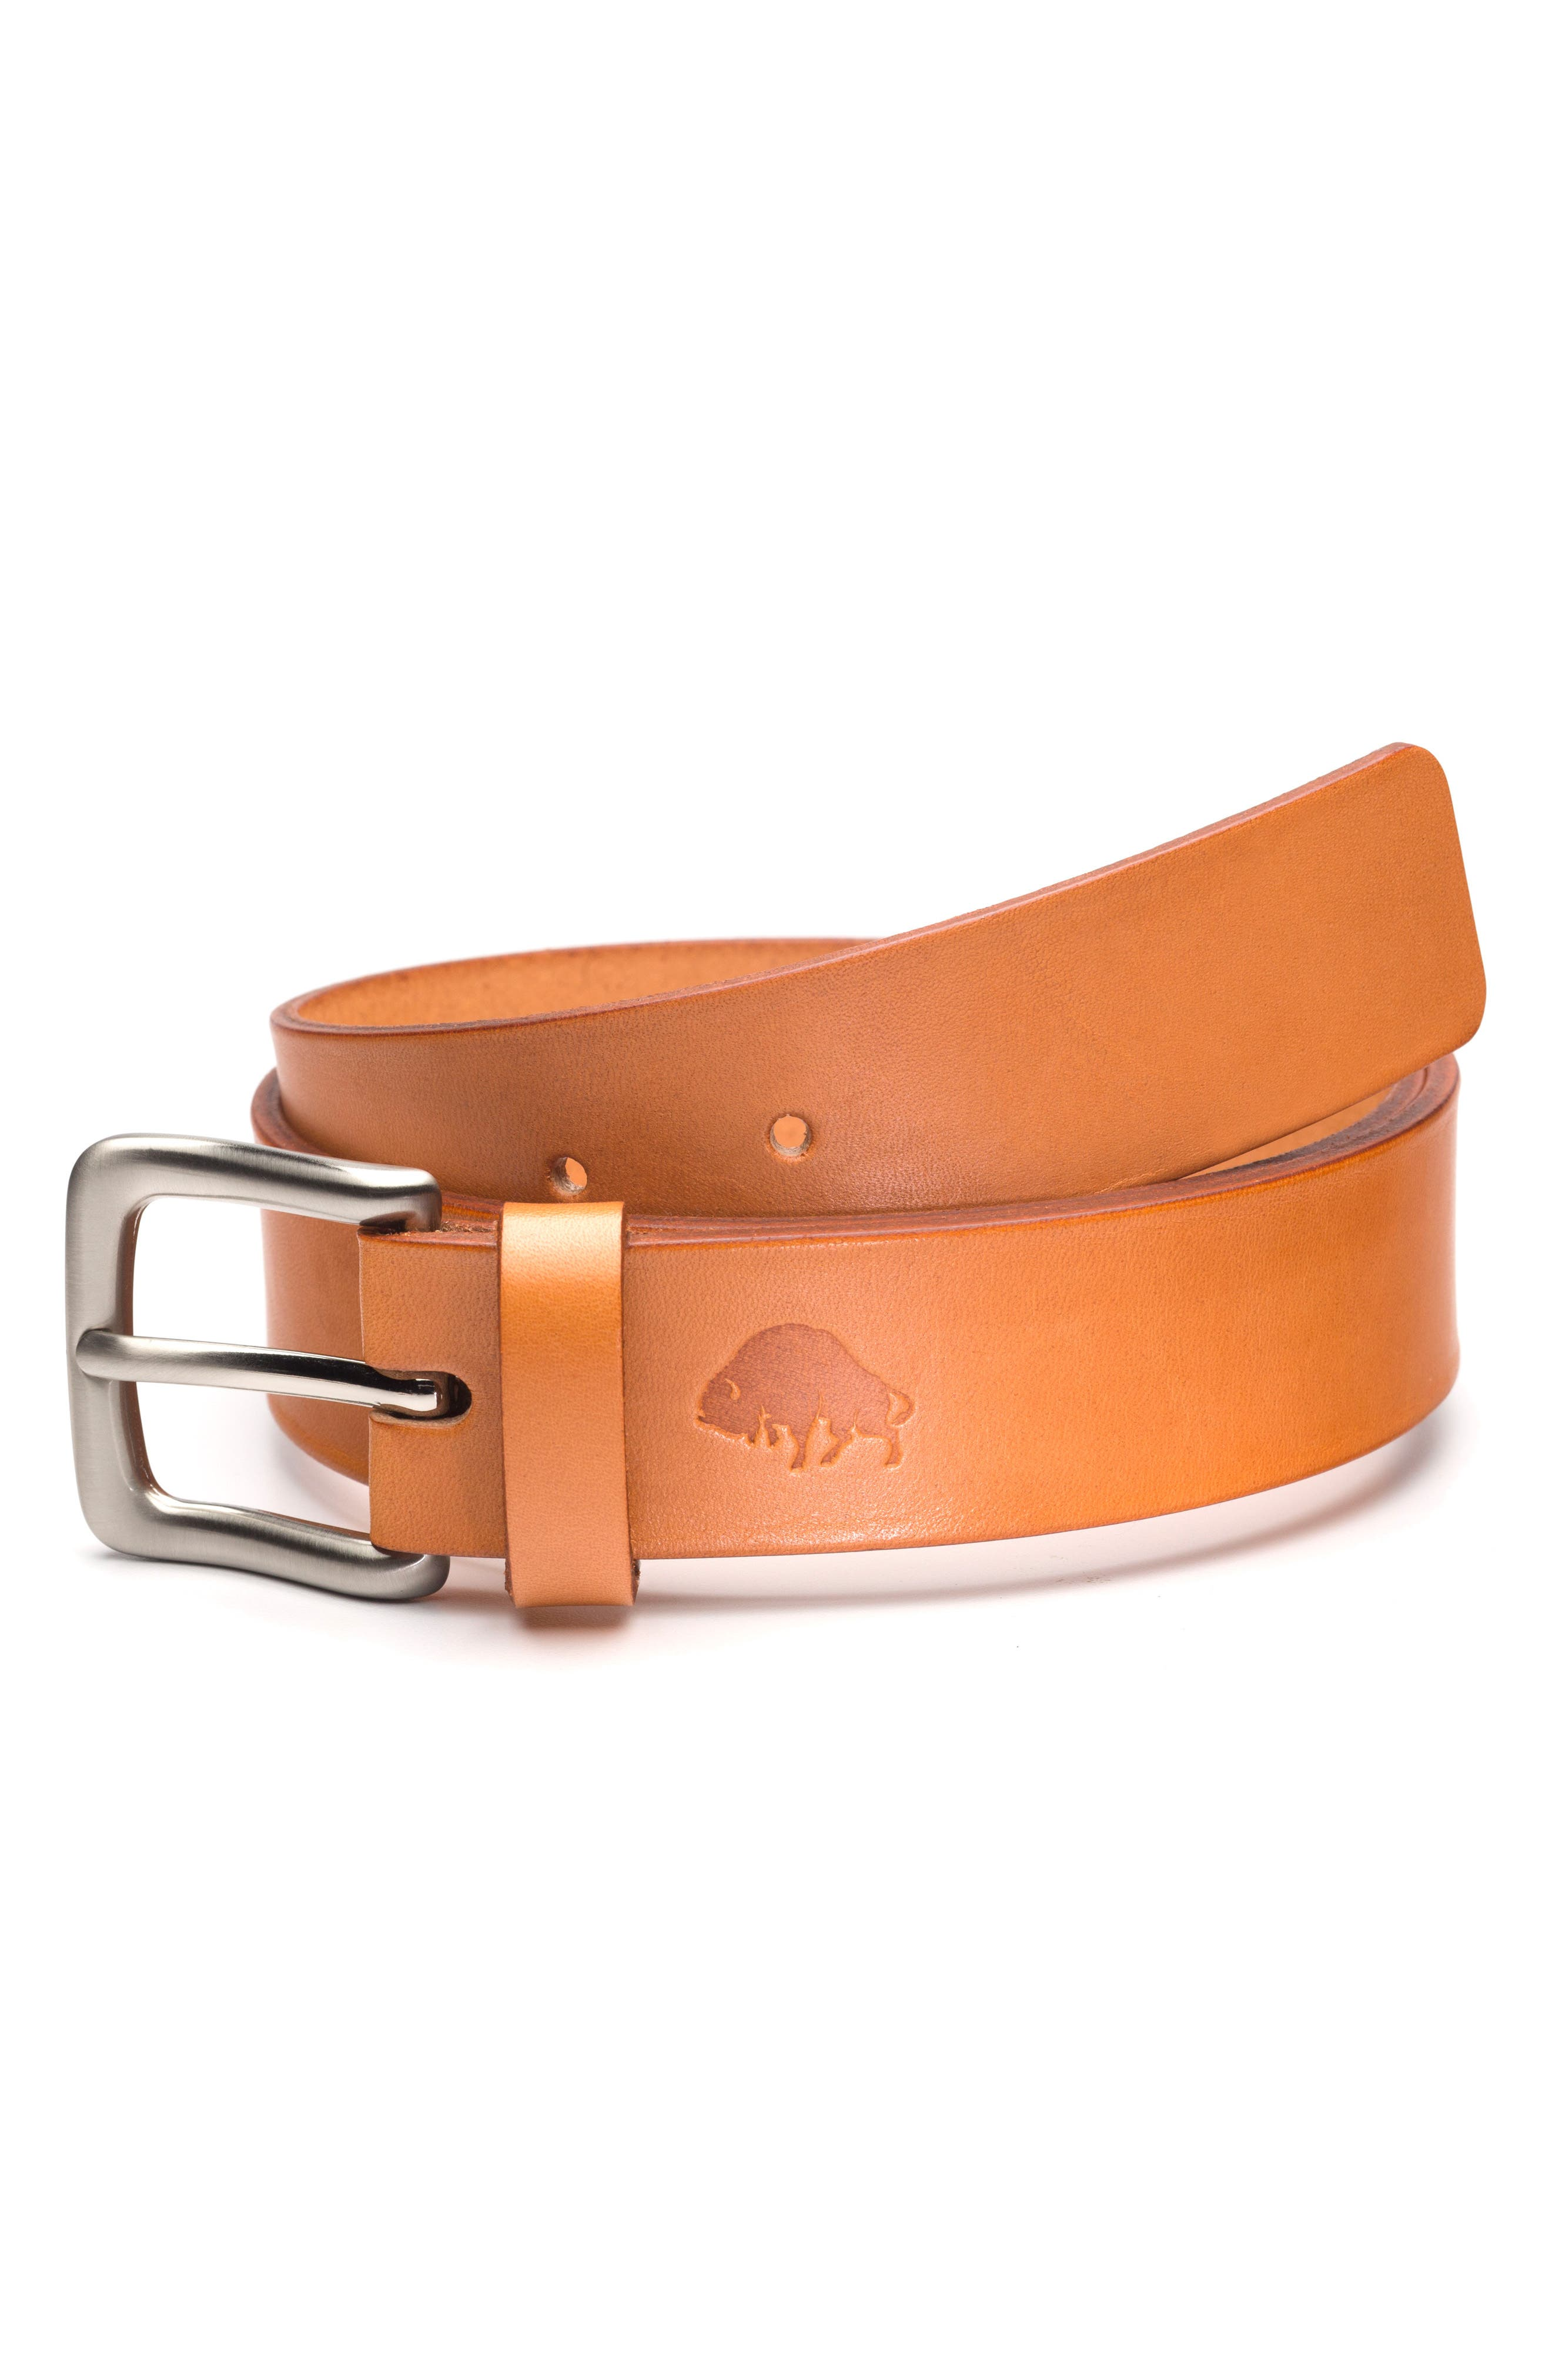 Alternate Image 1 Selected - Ezra Arthur No. 1 Leather Belt